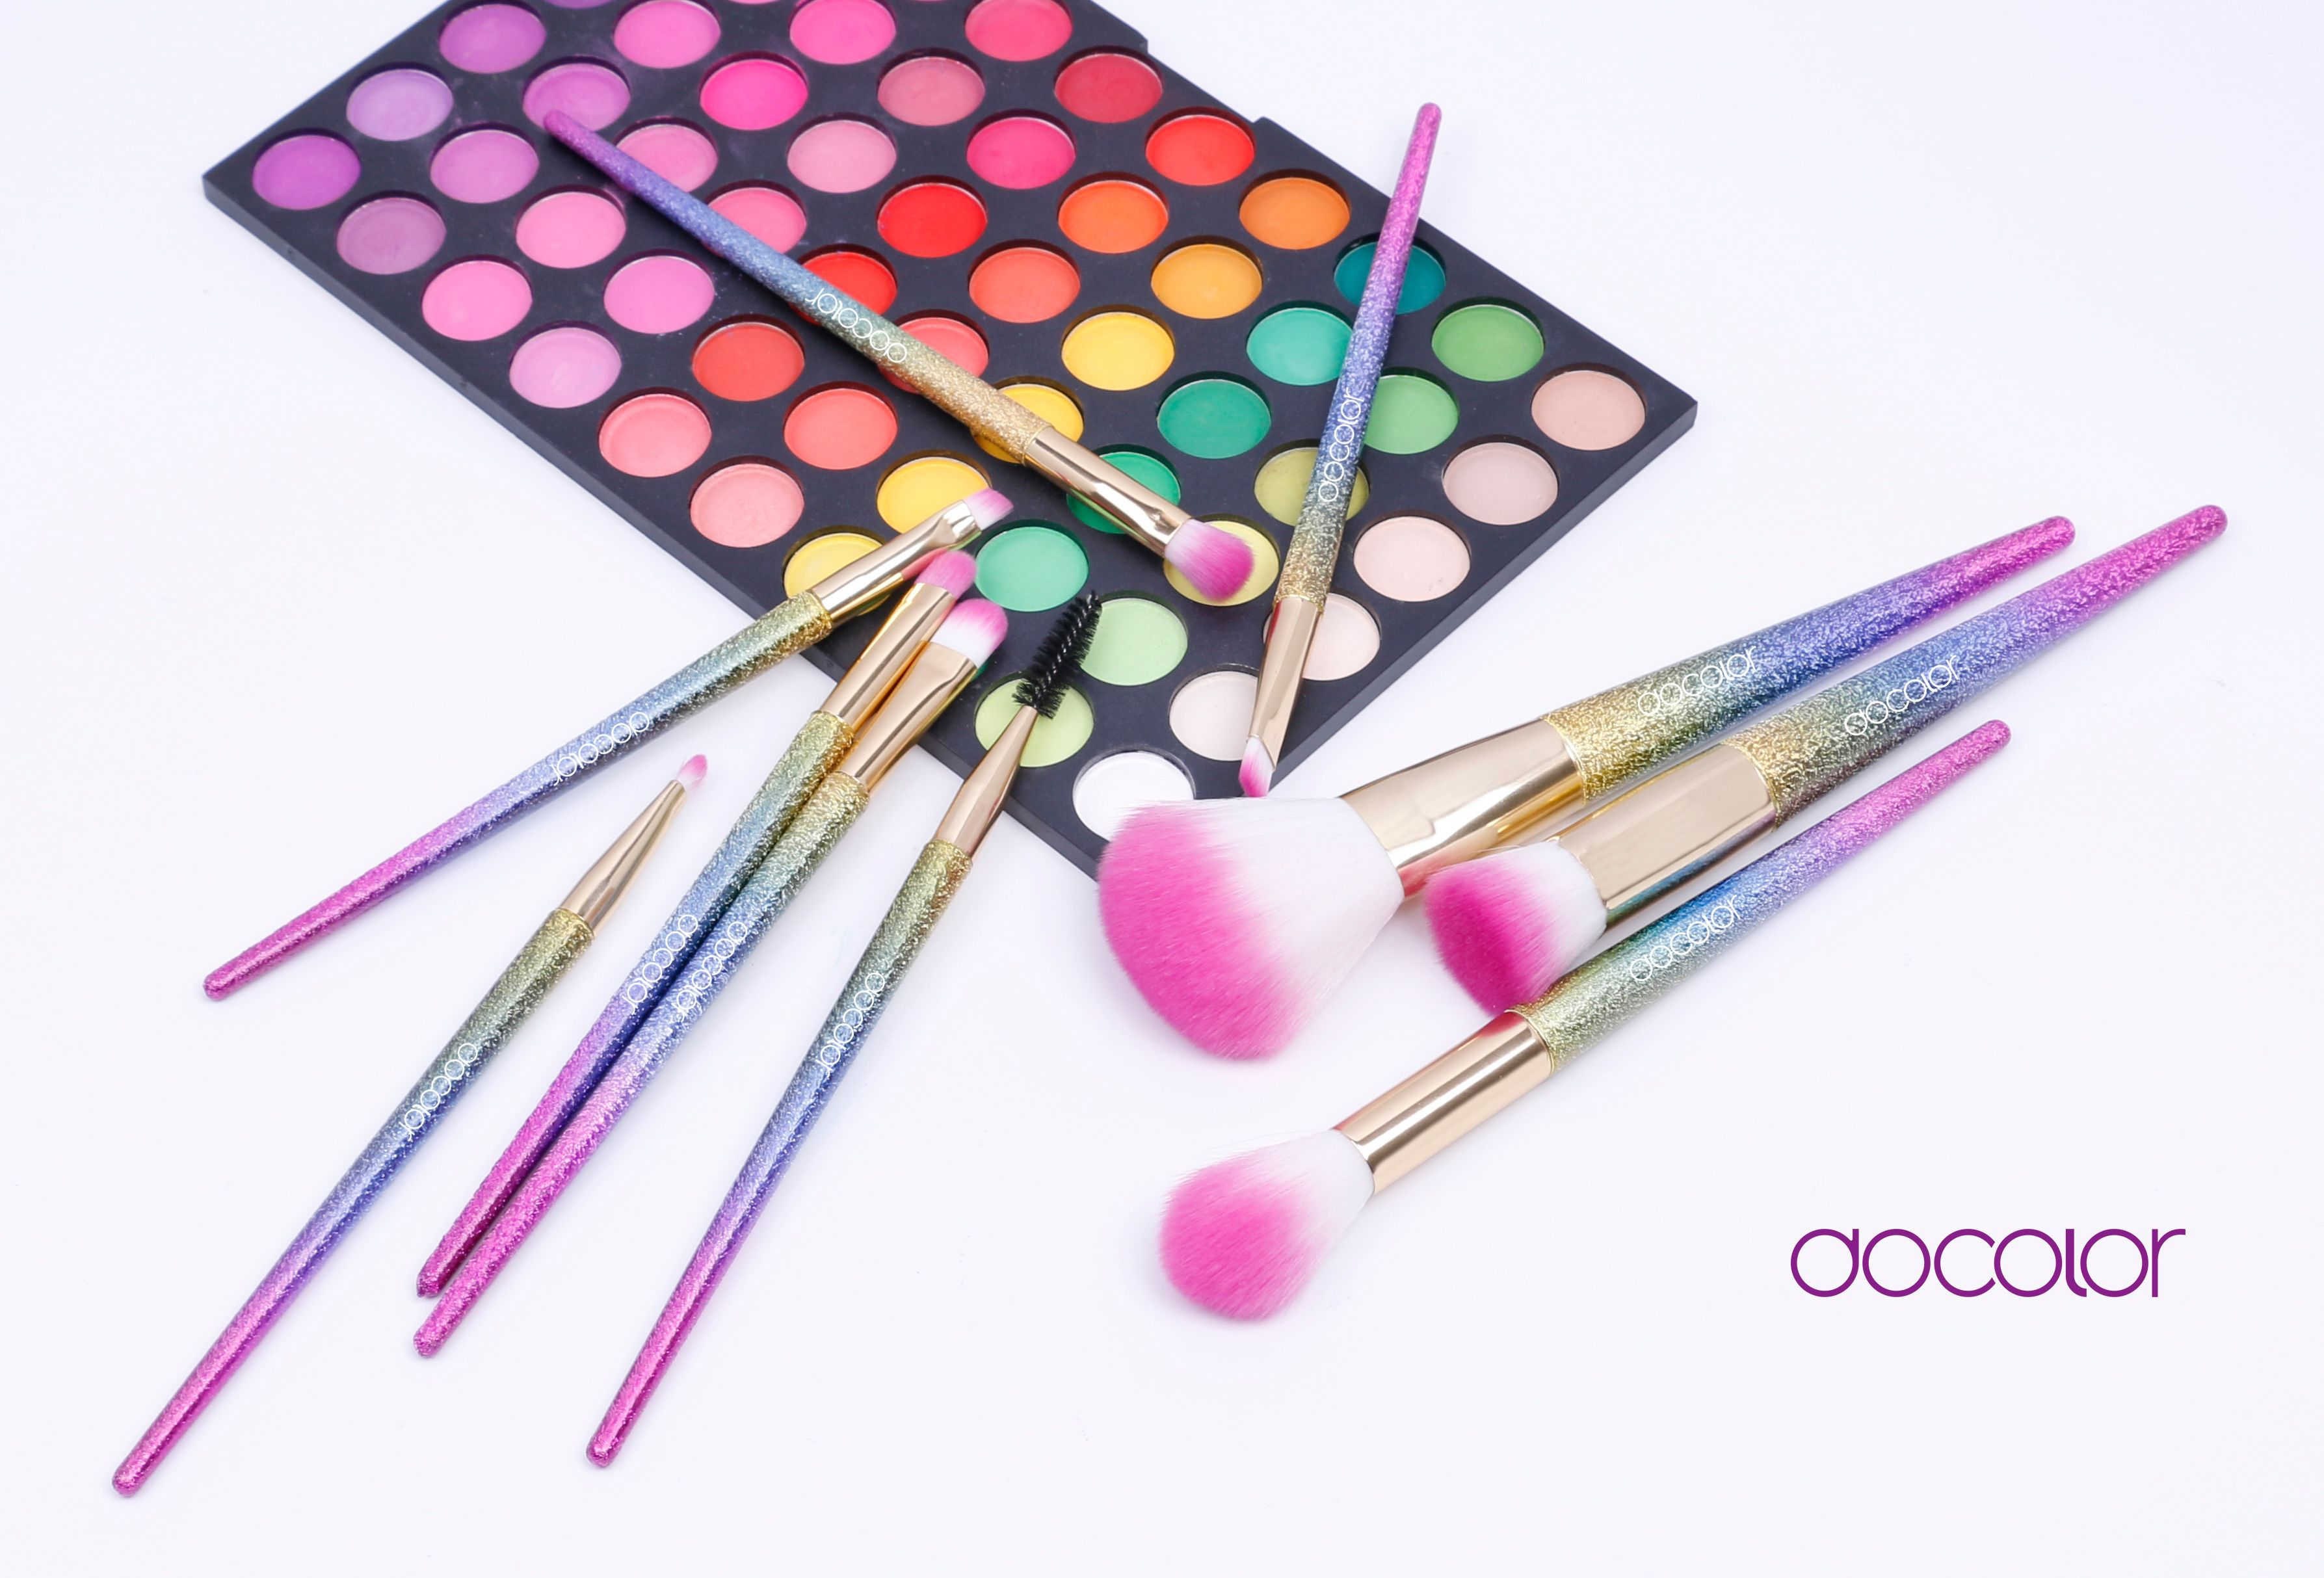 DOCOLOR Fantasy set! Best Christmas Gift ! Coming Soon